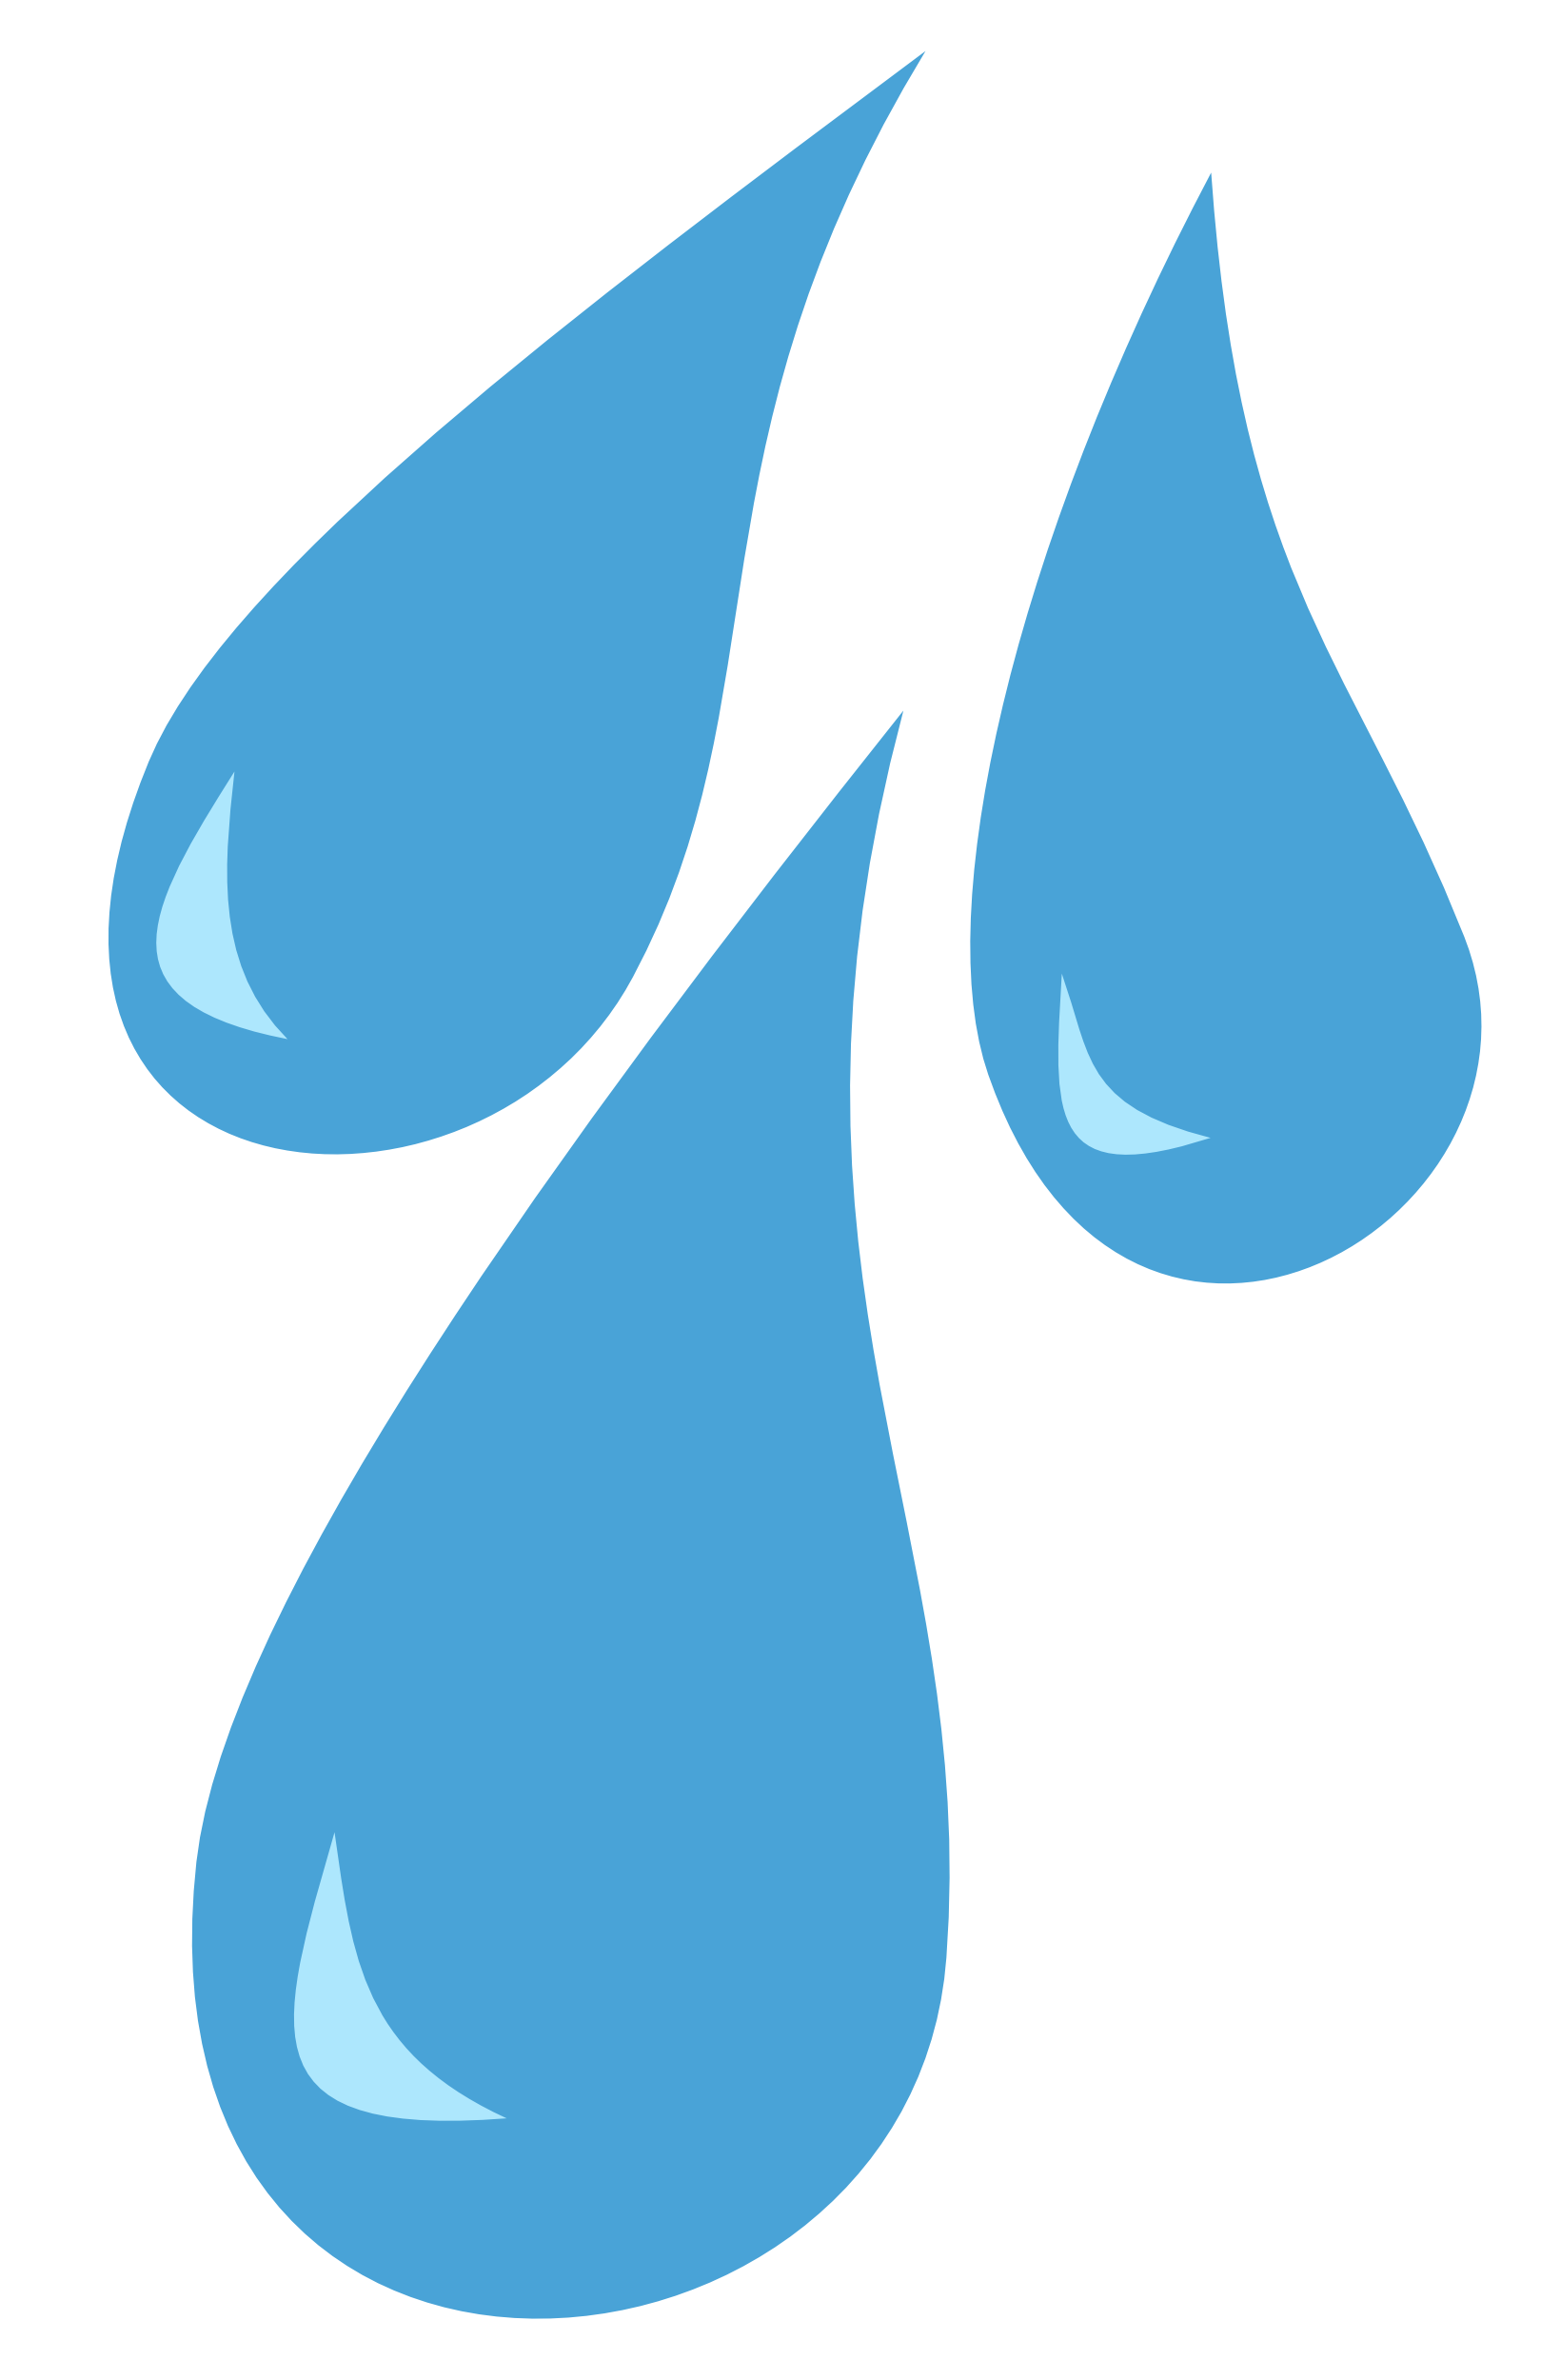 clipart free stock Droplet clipart water blast. Drop rain pencil and